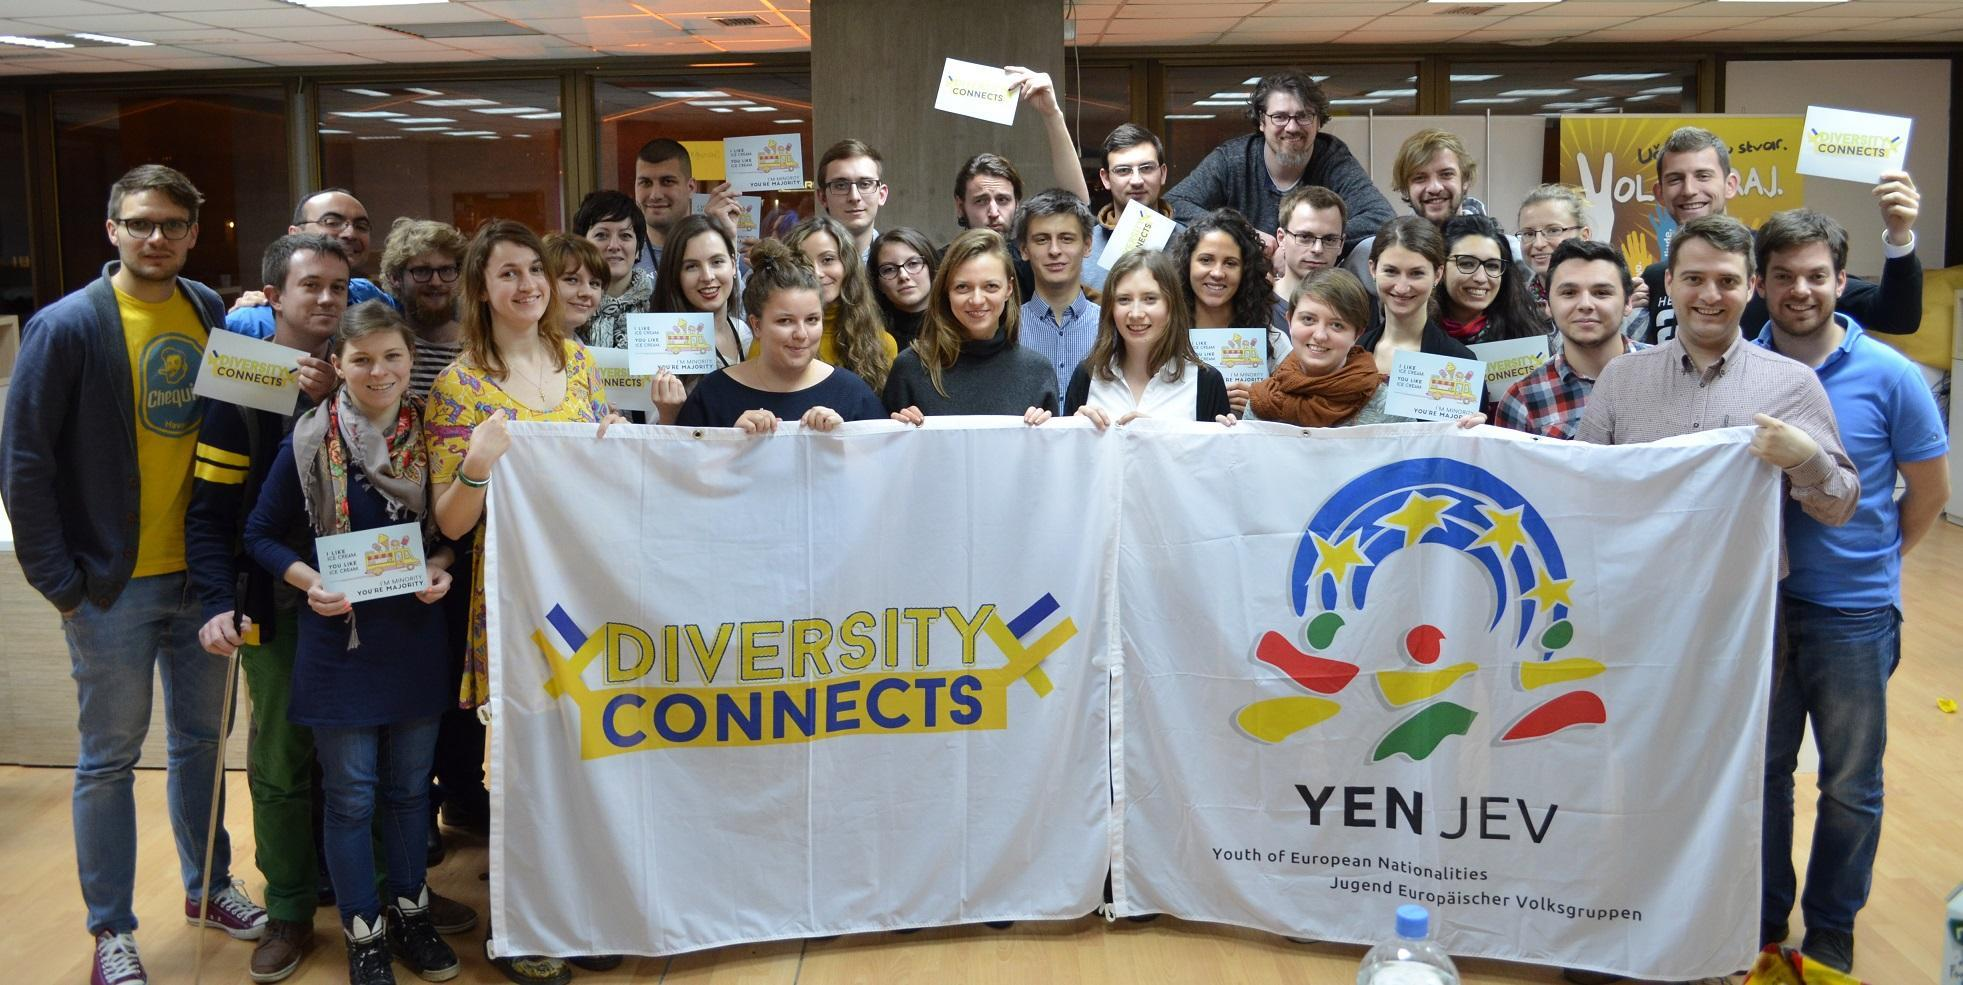 The Youth of European Nationalities was founded in 1984. by 11 youth organizations. Where YEN was formed?